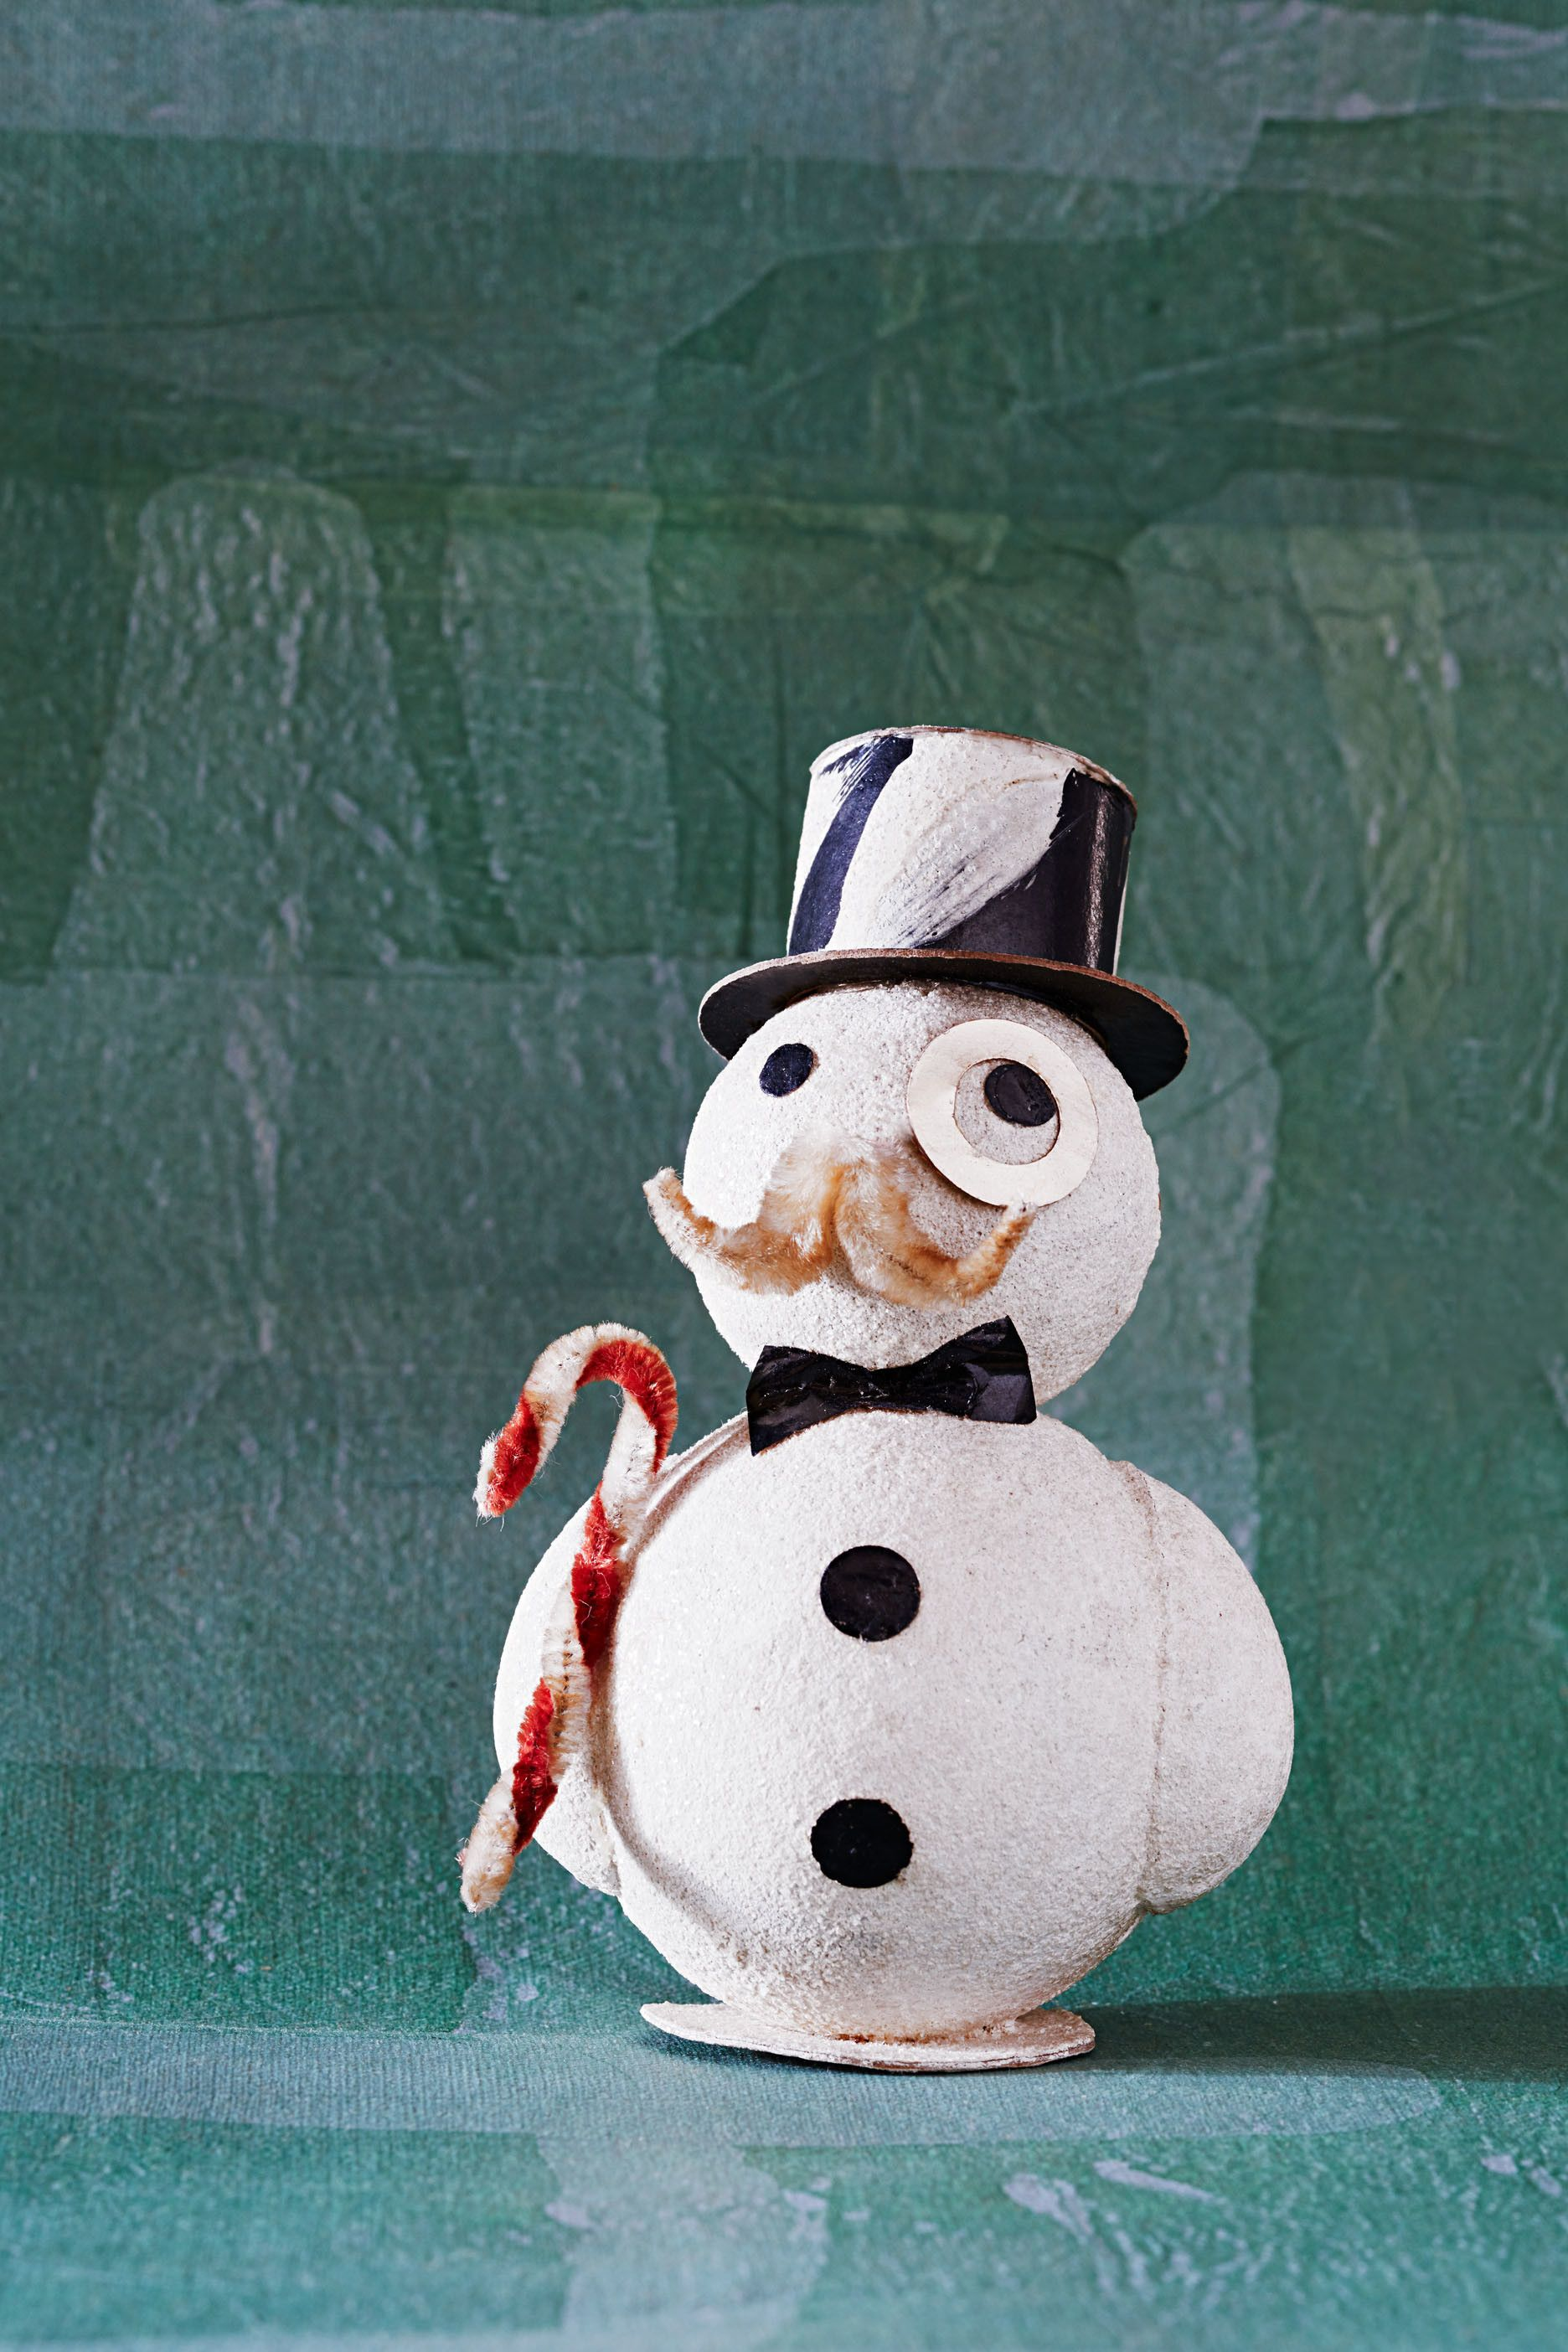 These vintage Christmas ornaments tell a rich story of